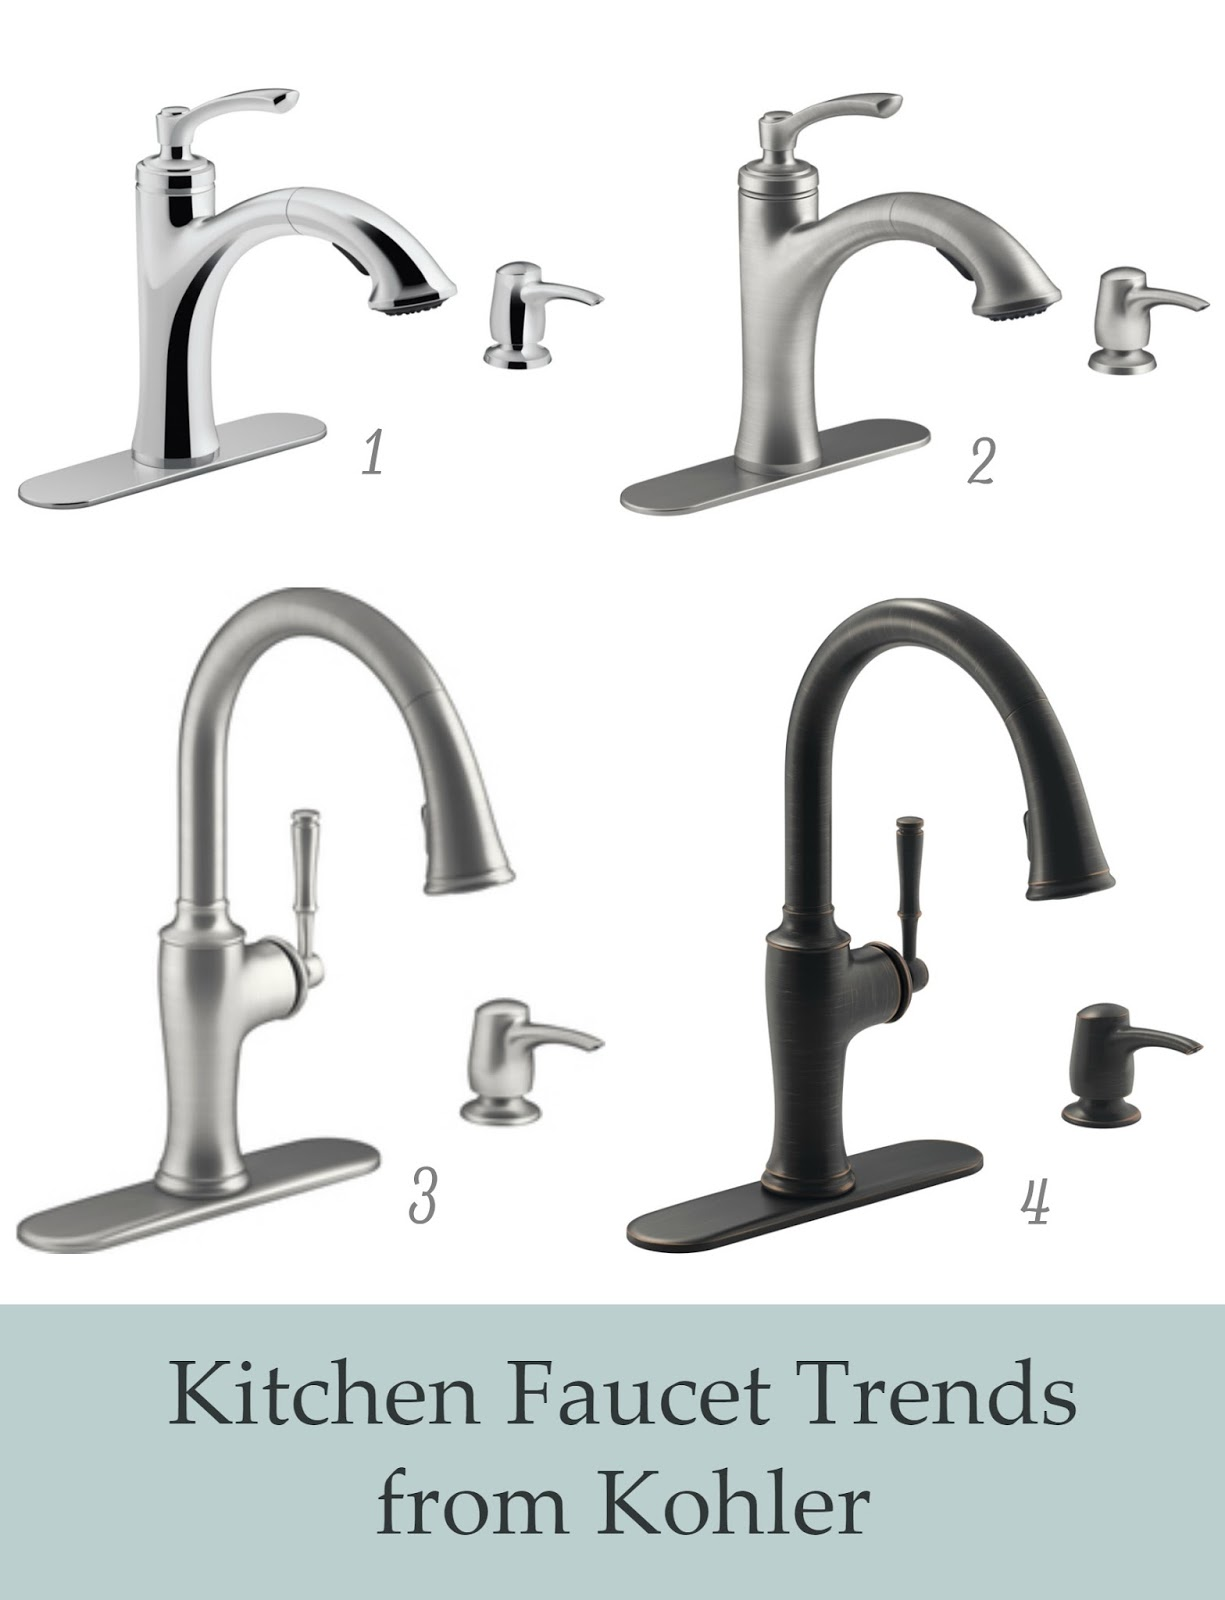 basement kitchen inspiration starts 22 kohler kitchen faucet new faucets from Kohler available exclusively at Lowe s that would be perfect for the space as well And the best part is they don t break the bank